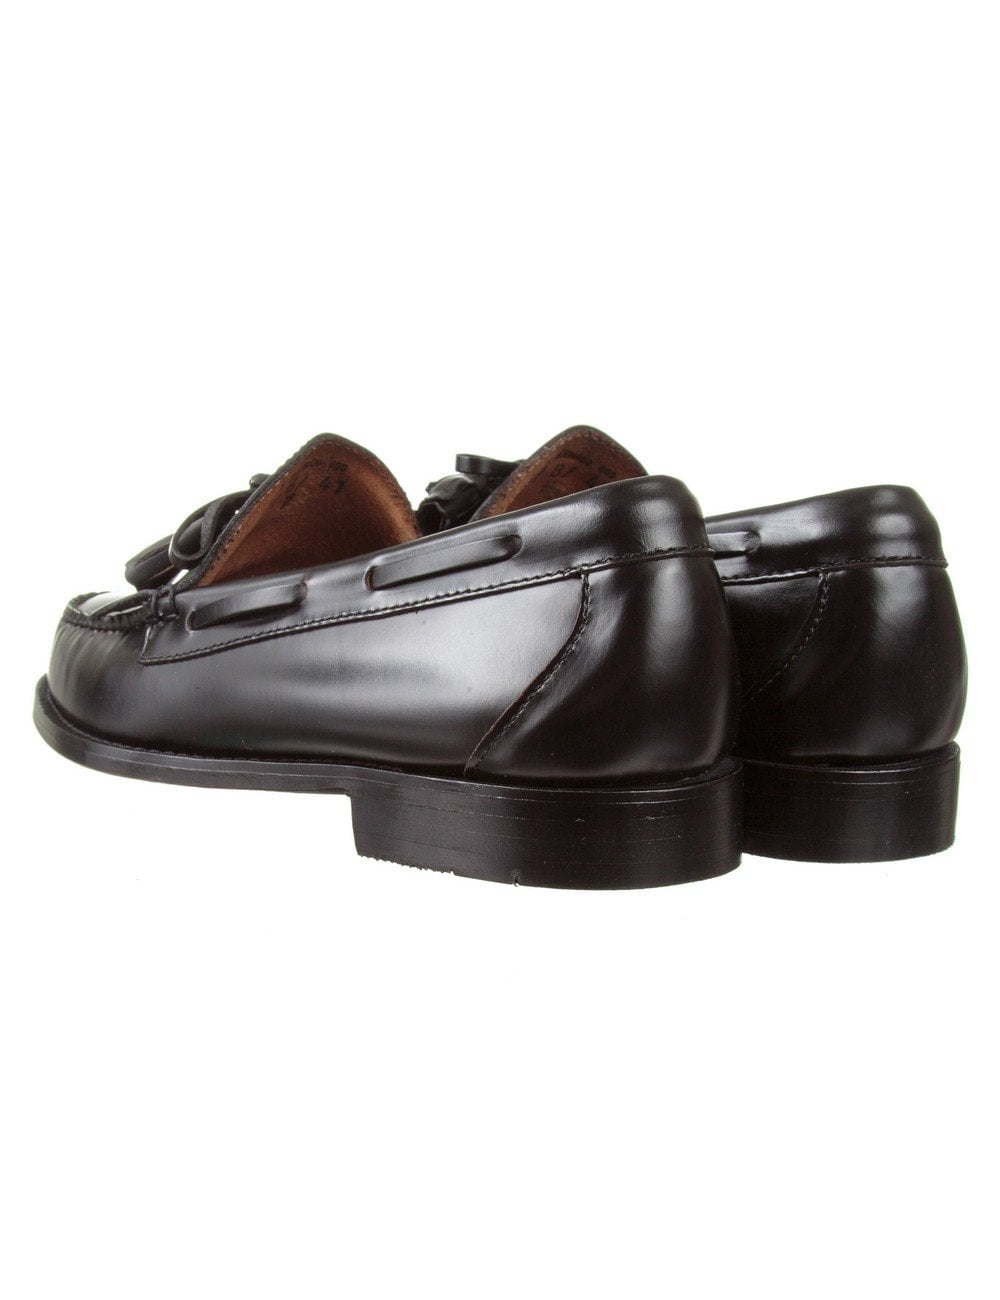 865fbc8f0cd Bass Weejuns Layton Kiltie Loafer - Black - Shoes   Boots from Fat ...